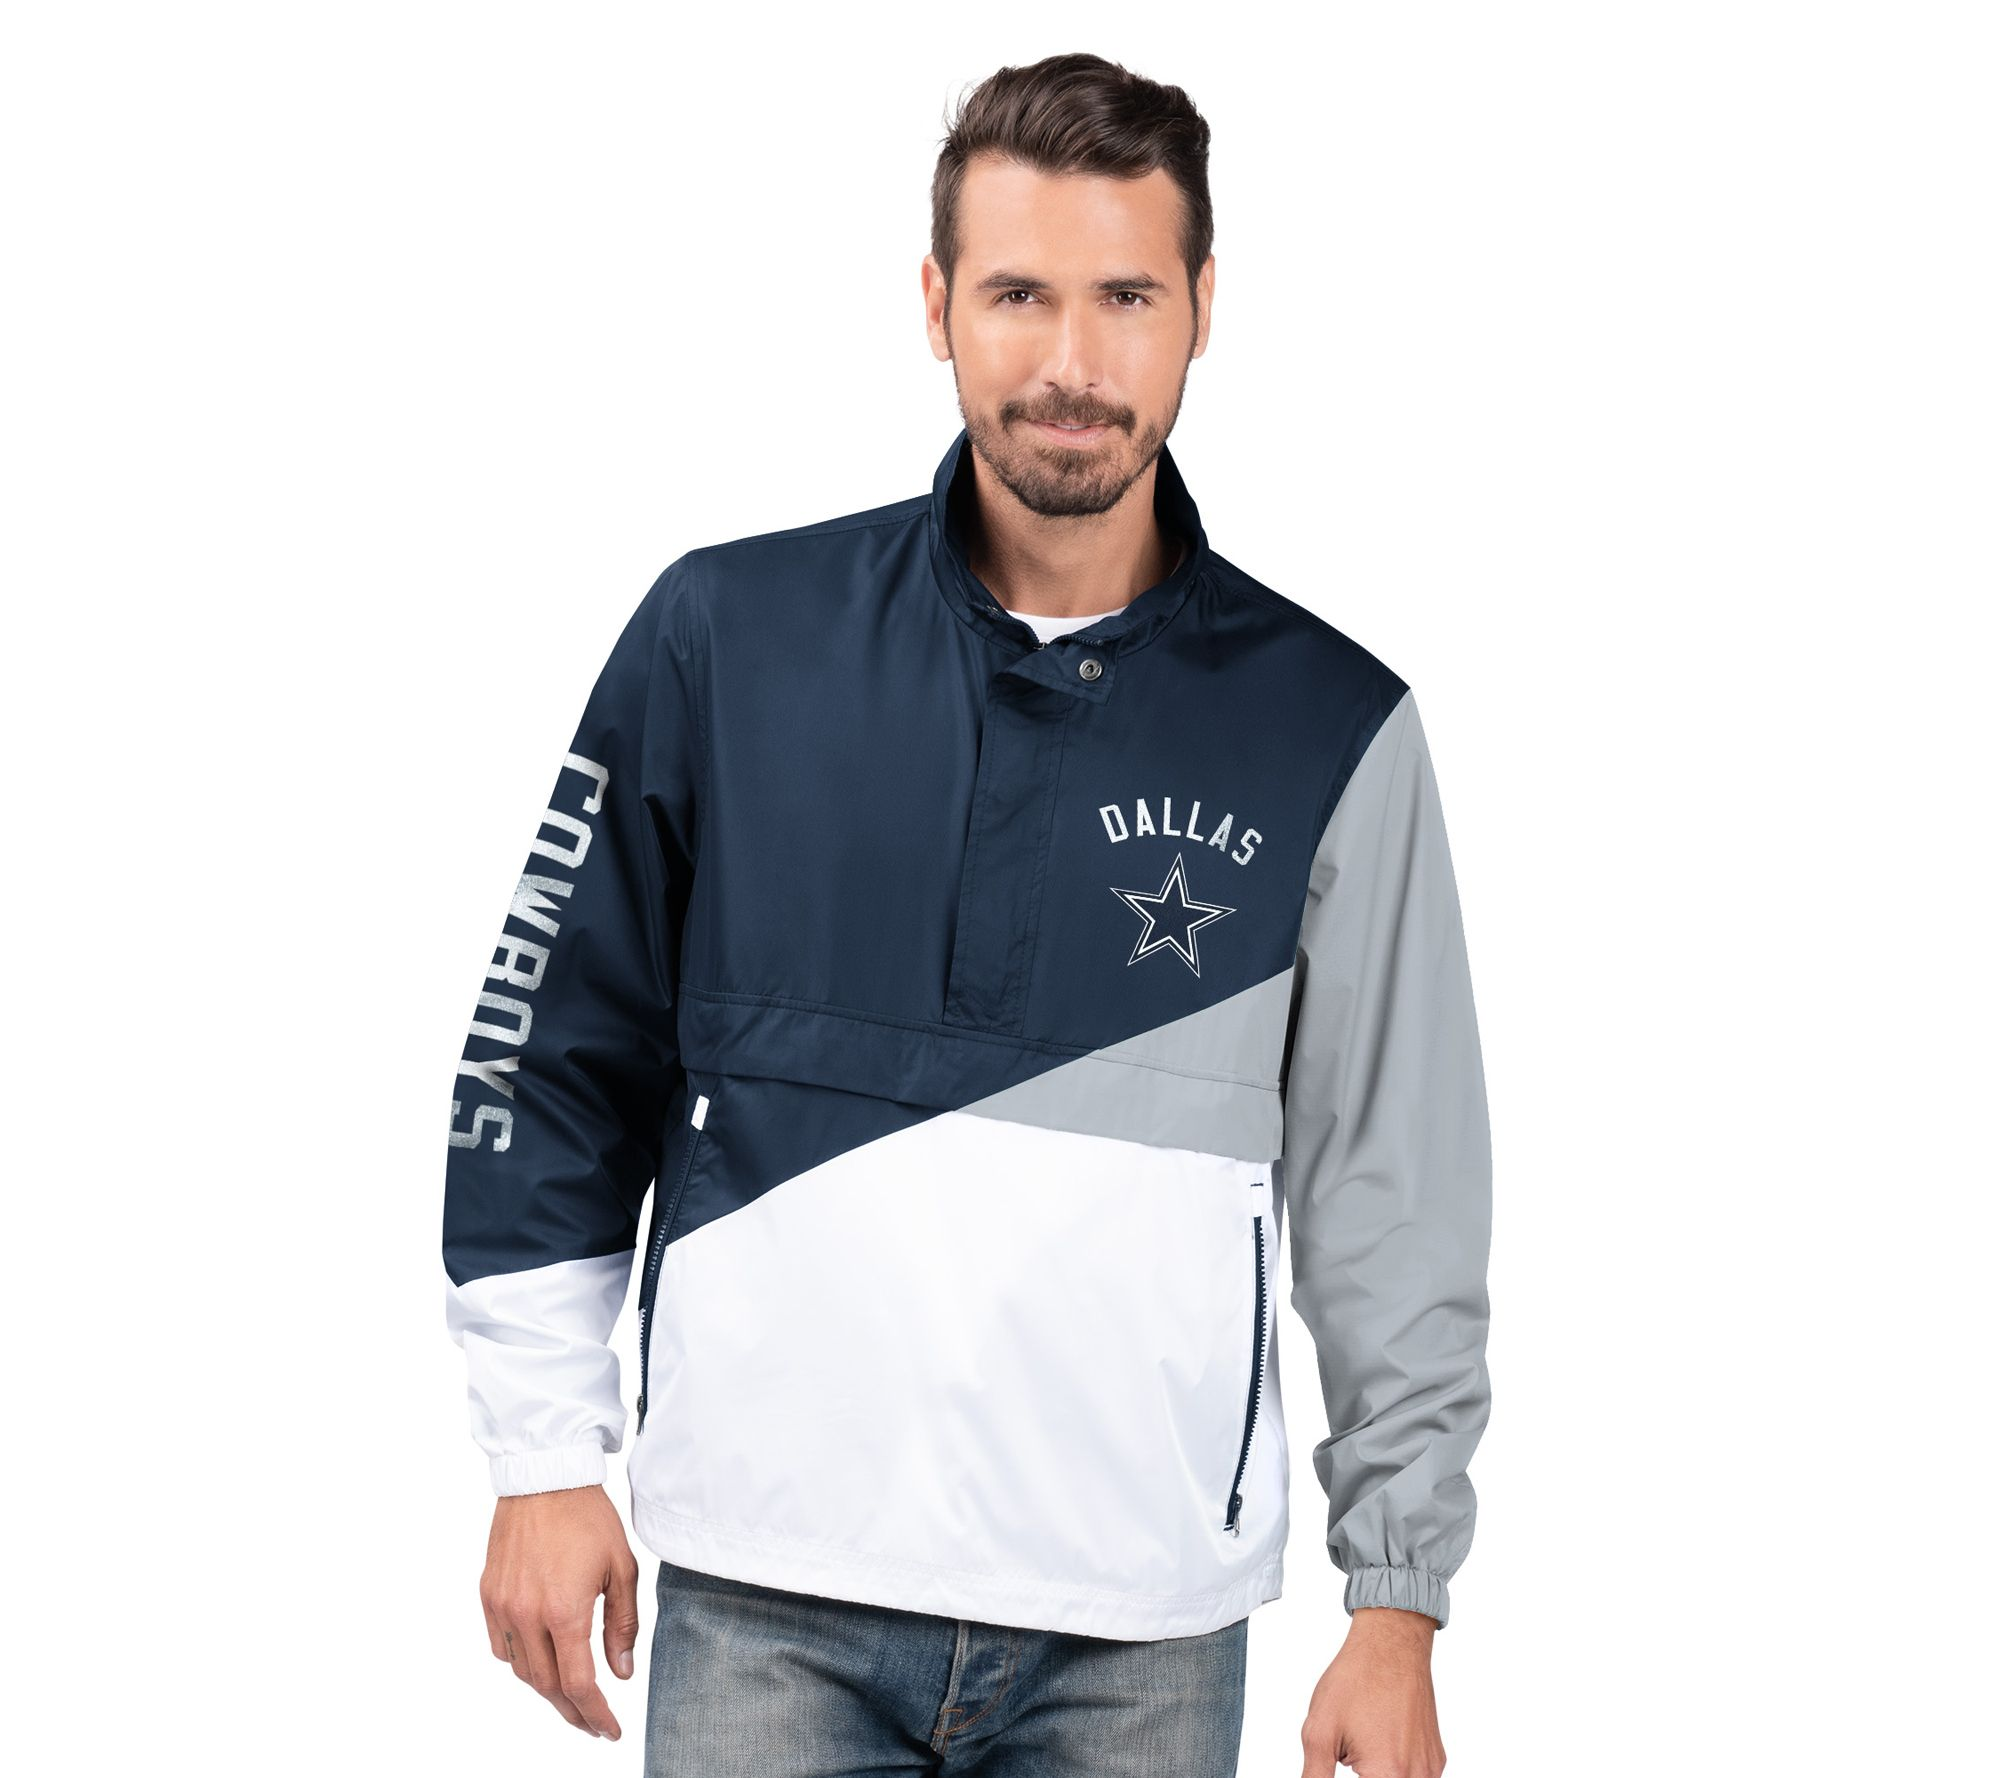 reputable site ef4f2 a369f NFL Dallas Men's Lightweight Pull-Over Jacket — QVC.com